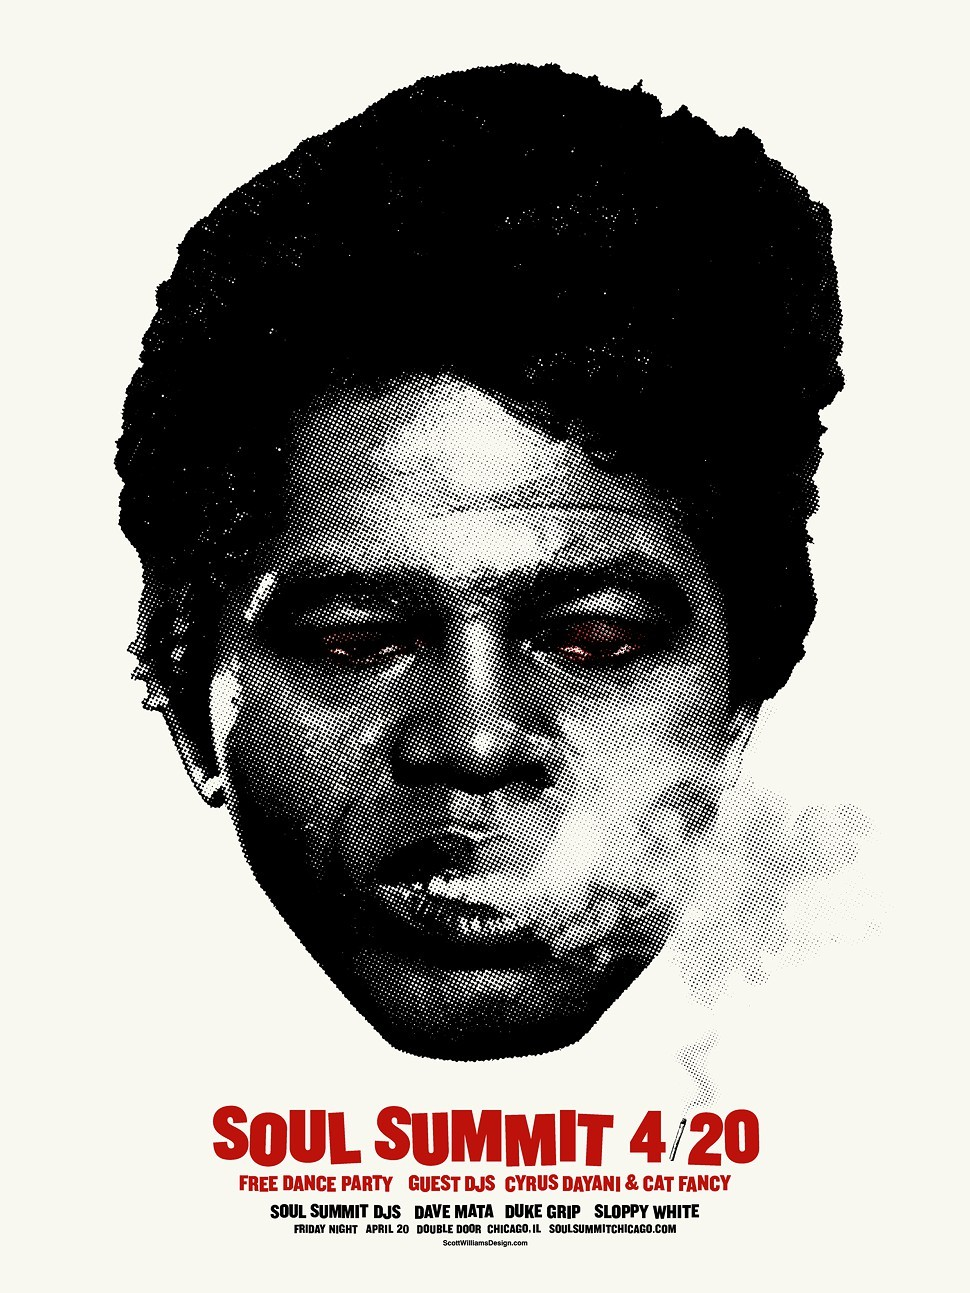 SoulSummit-420-poster-for-reader.jpg